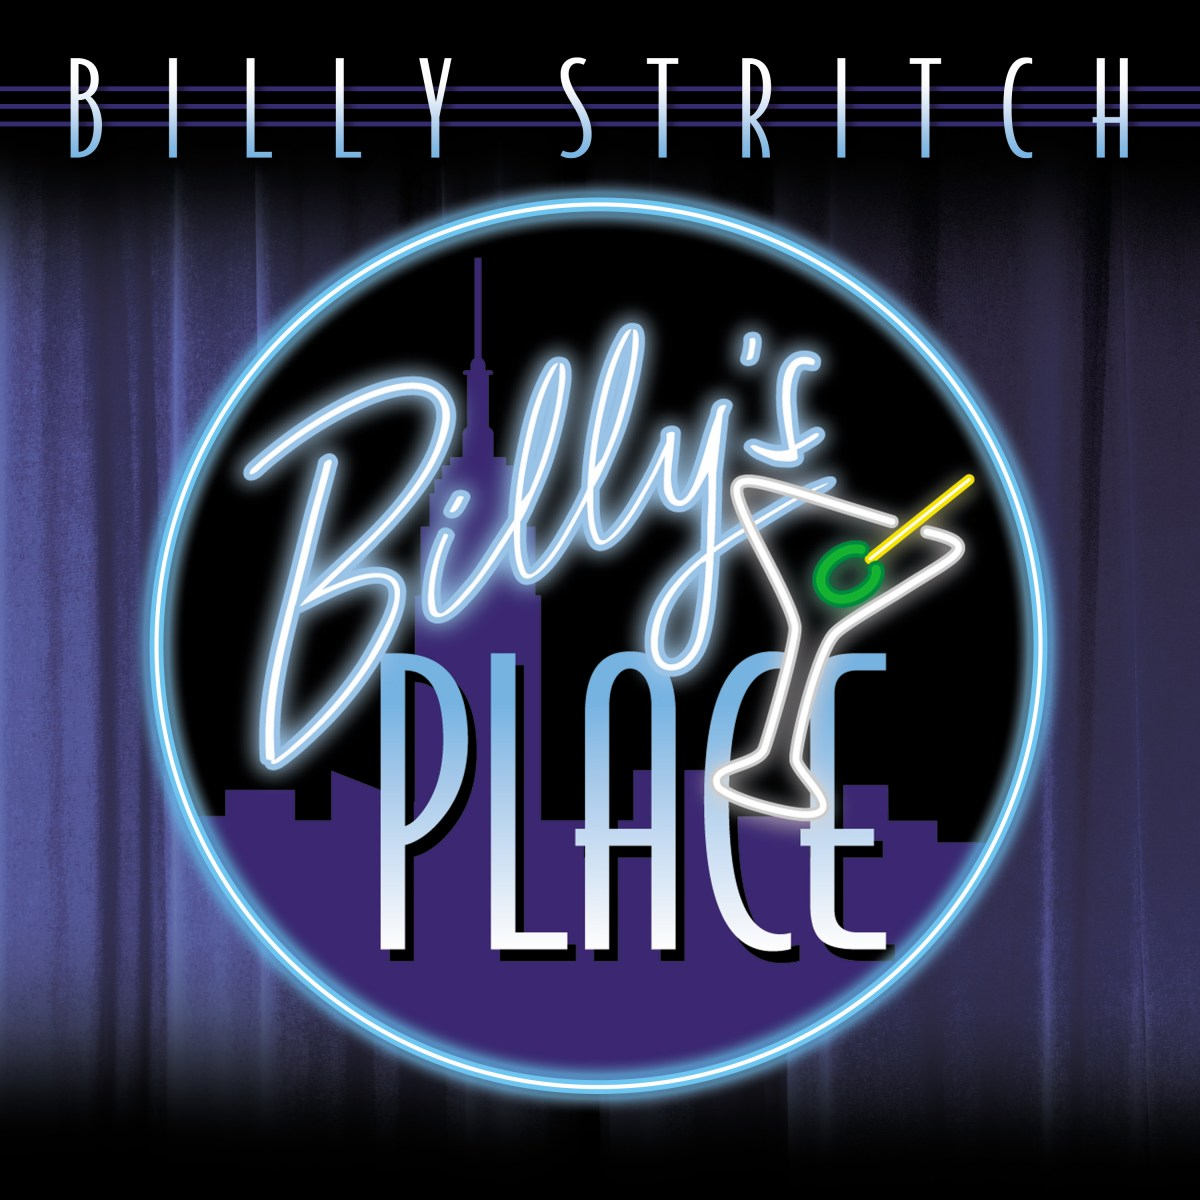 Cover Photo of Billy Stritch's new album Billy's Place